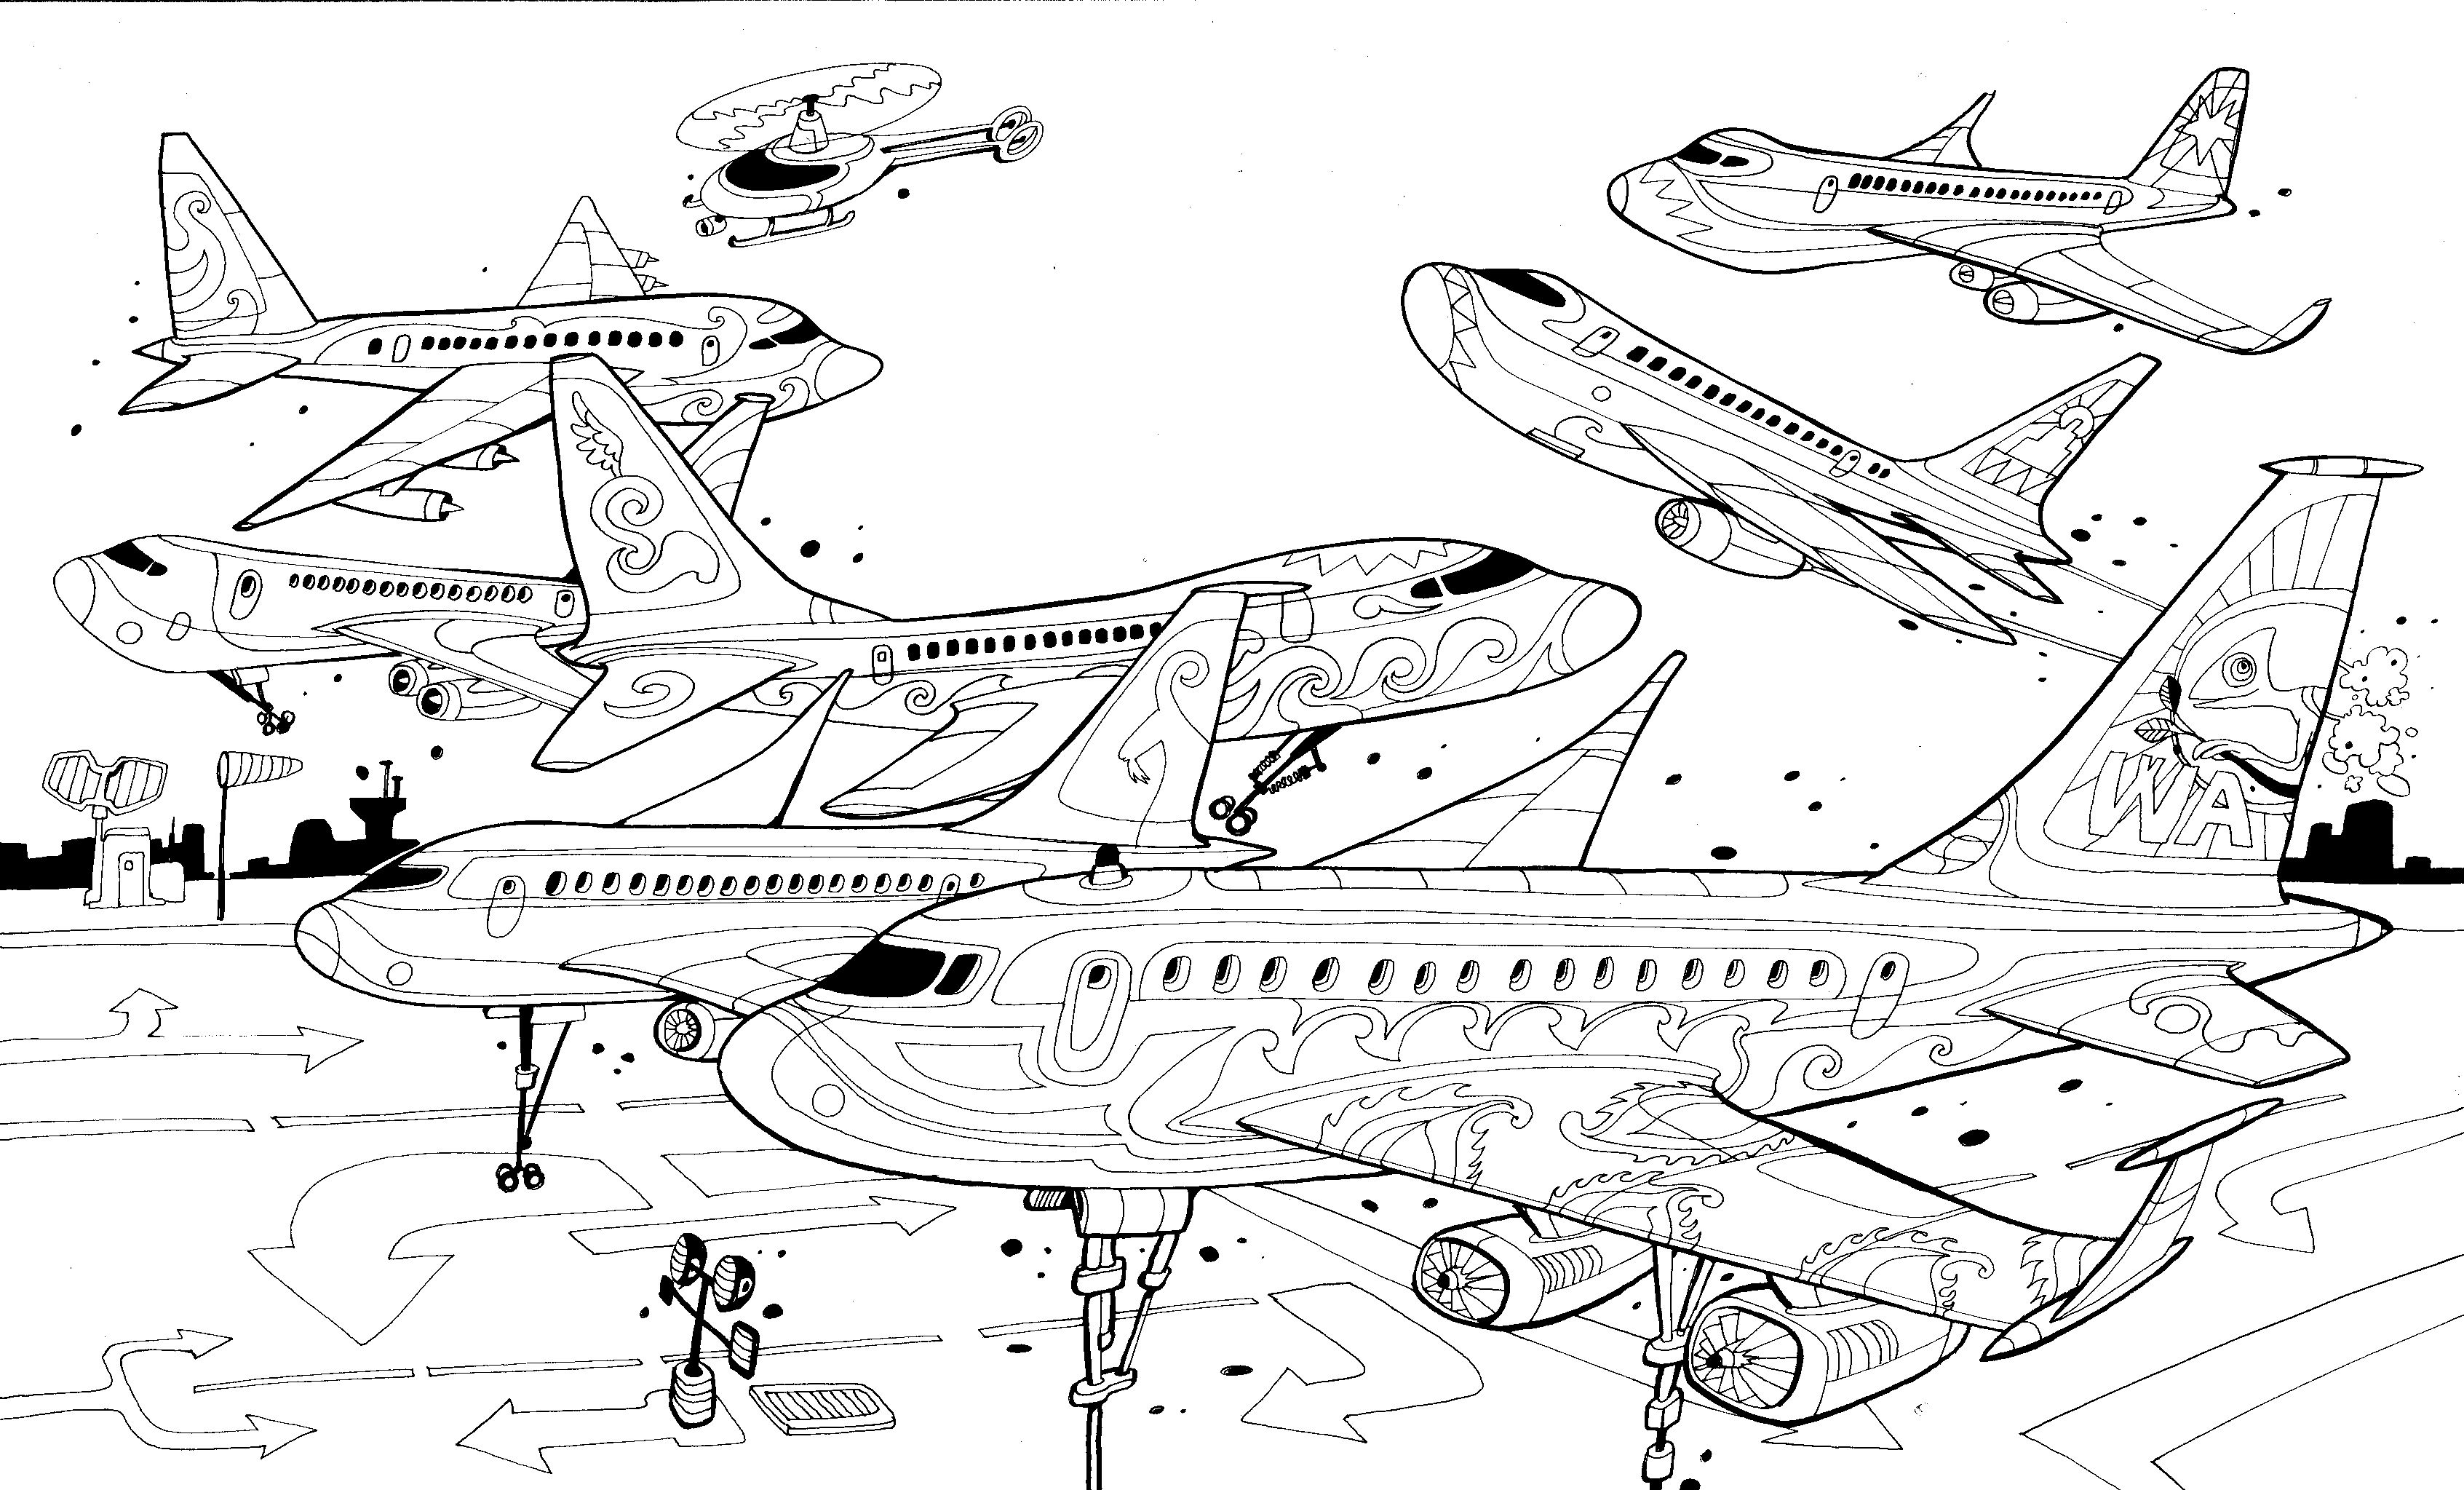 airport maps coloring pages | Pin by carlo stanga on The Wandering City | Illustrazioni